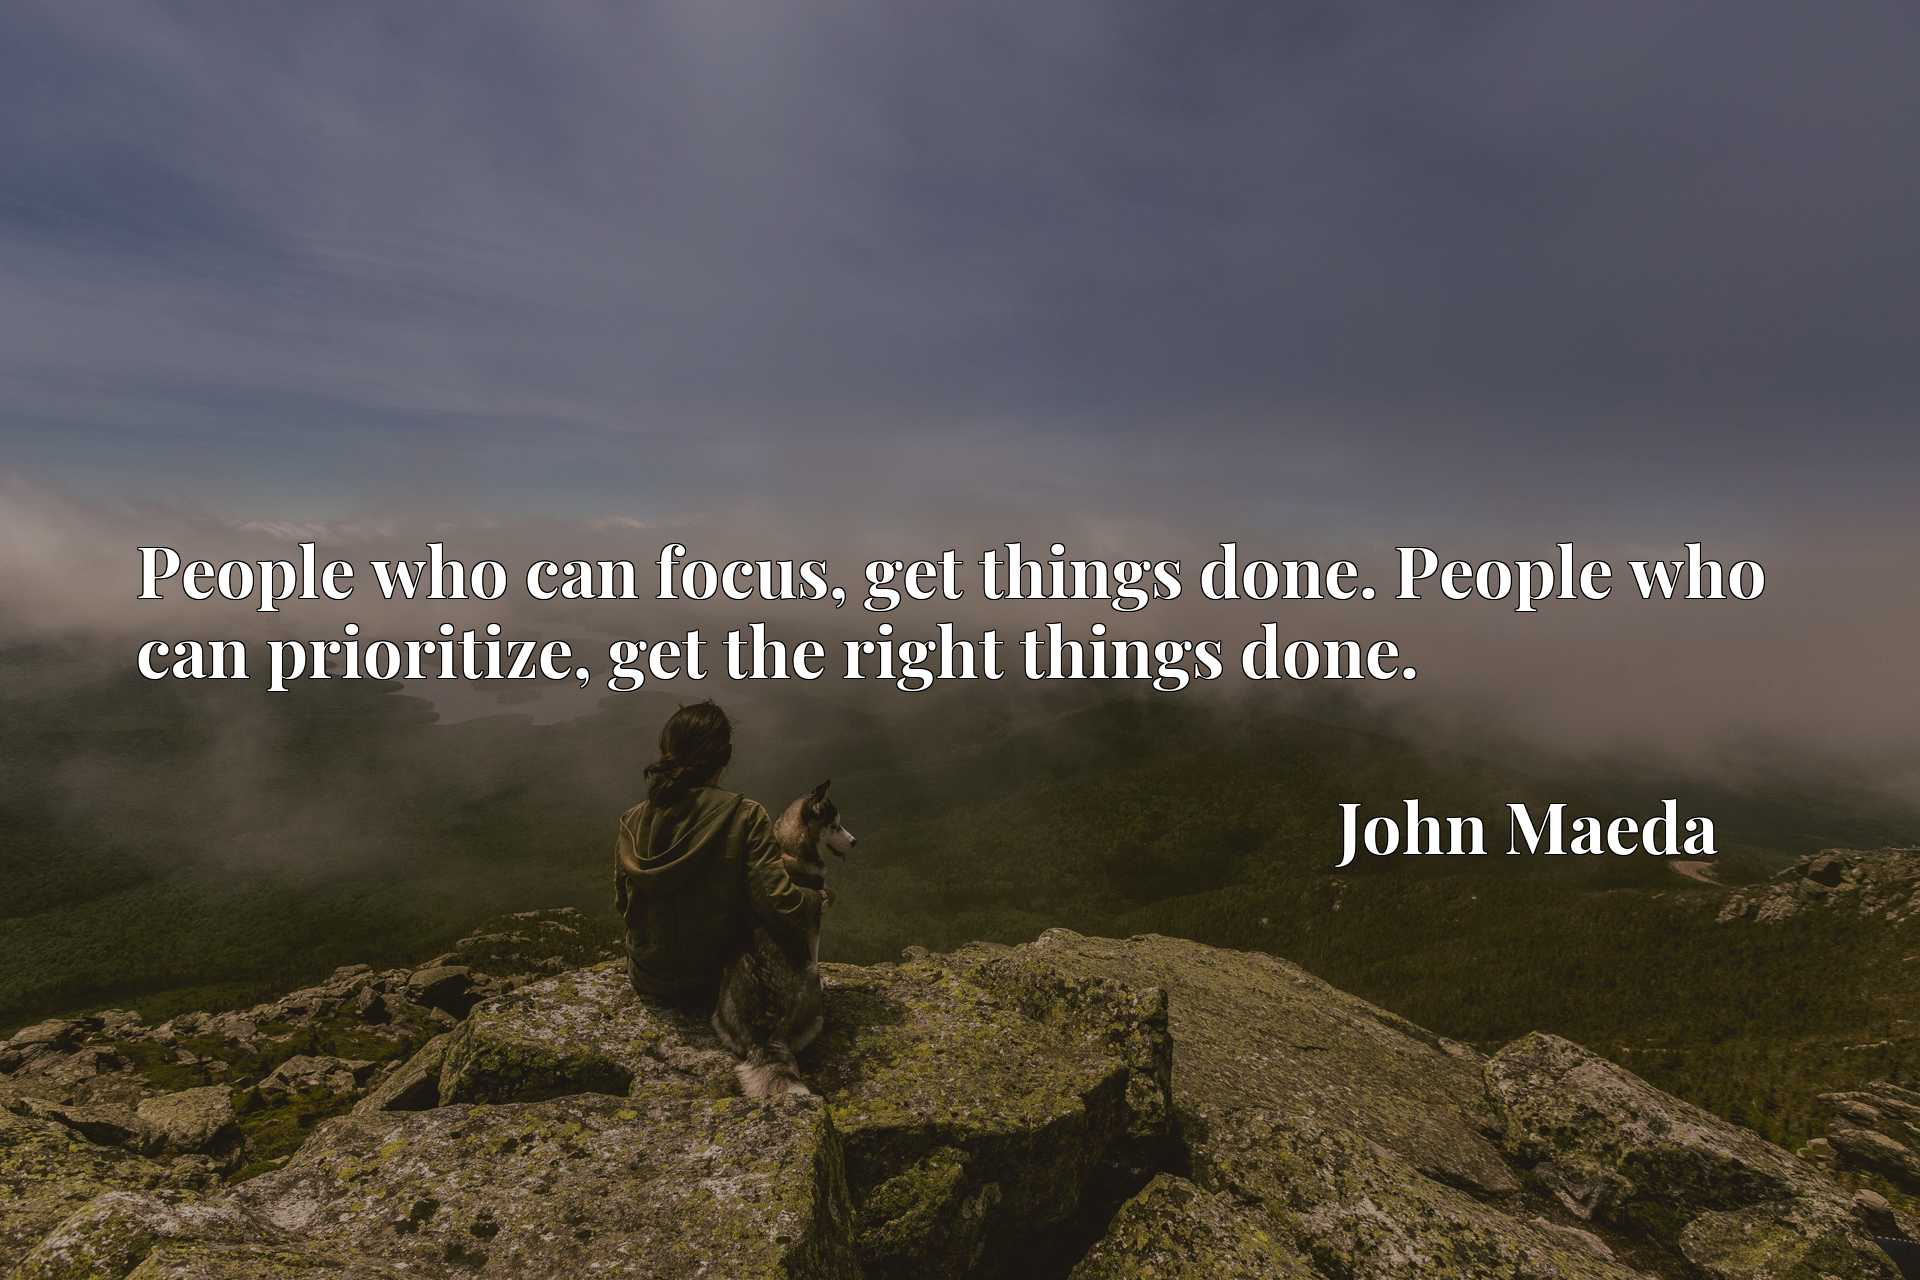 People who can focus, get things done. People who can prioritize, get the right things done.